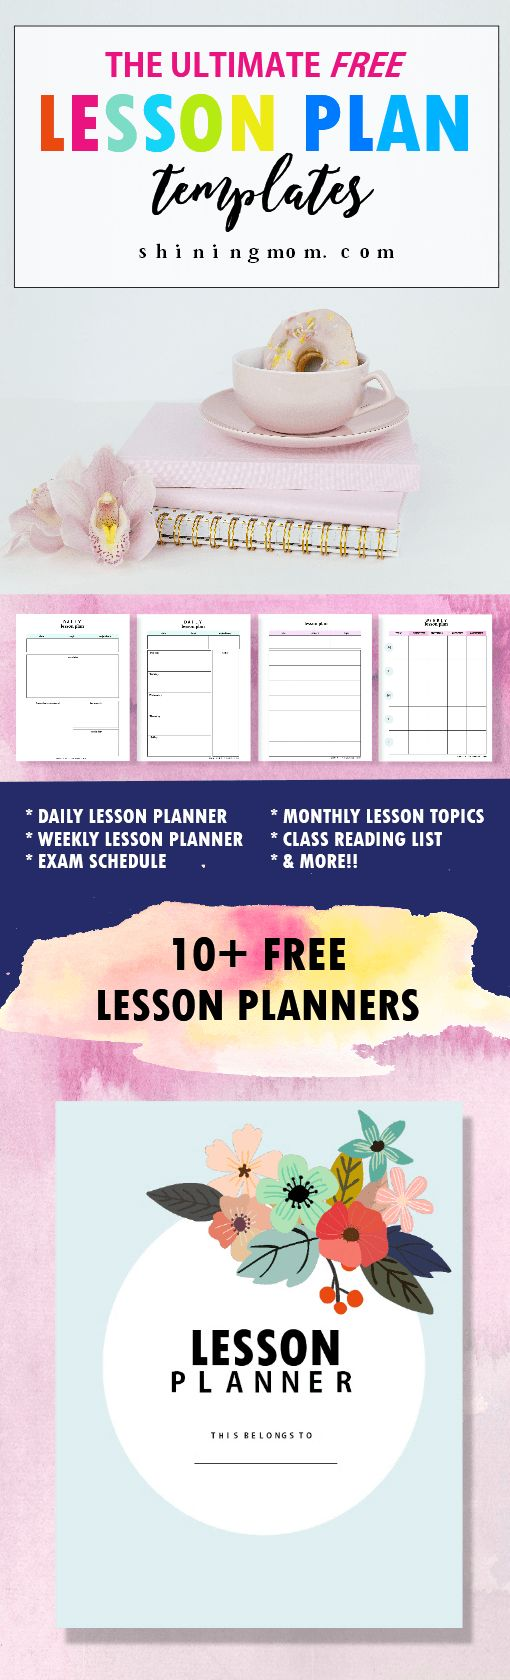 Teachers! Use this FREE lesson plan template printable bundle to organize your lessons in school!